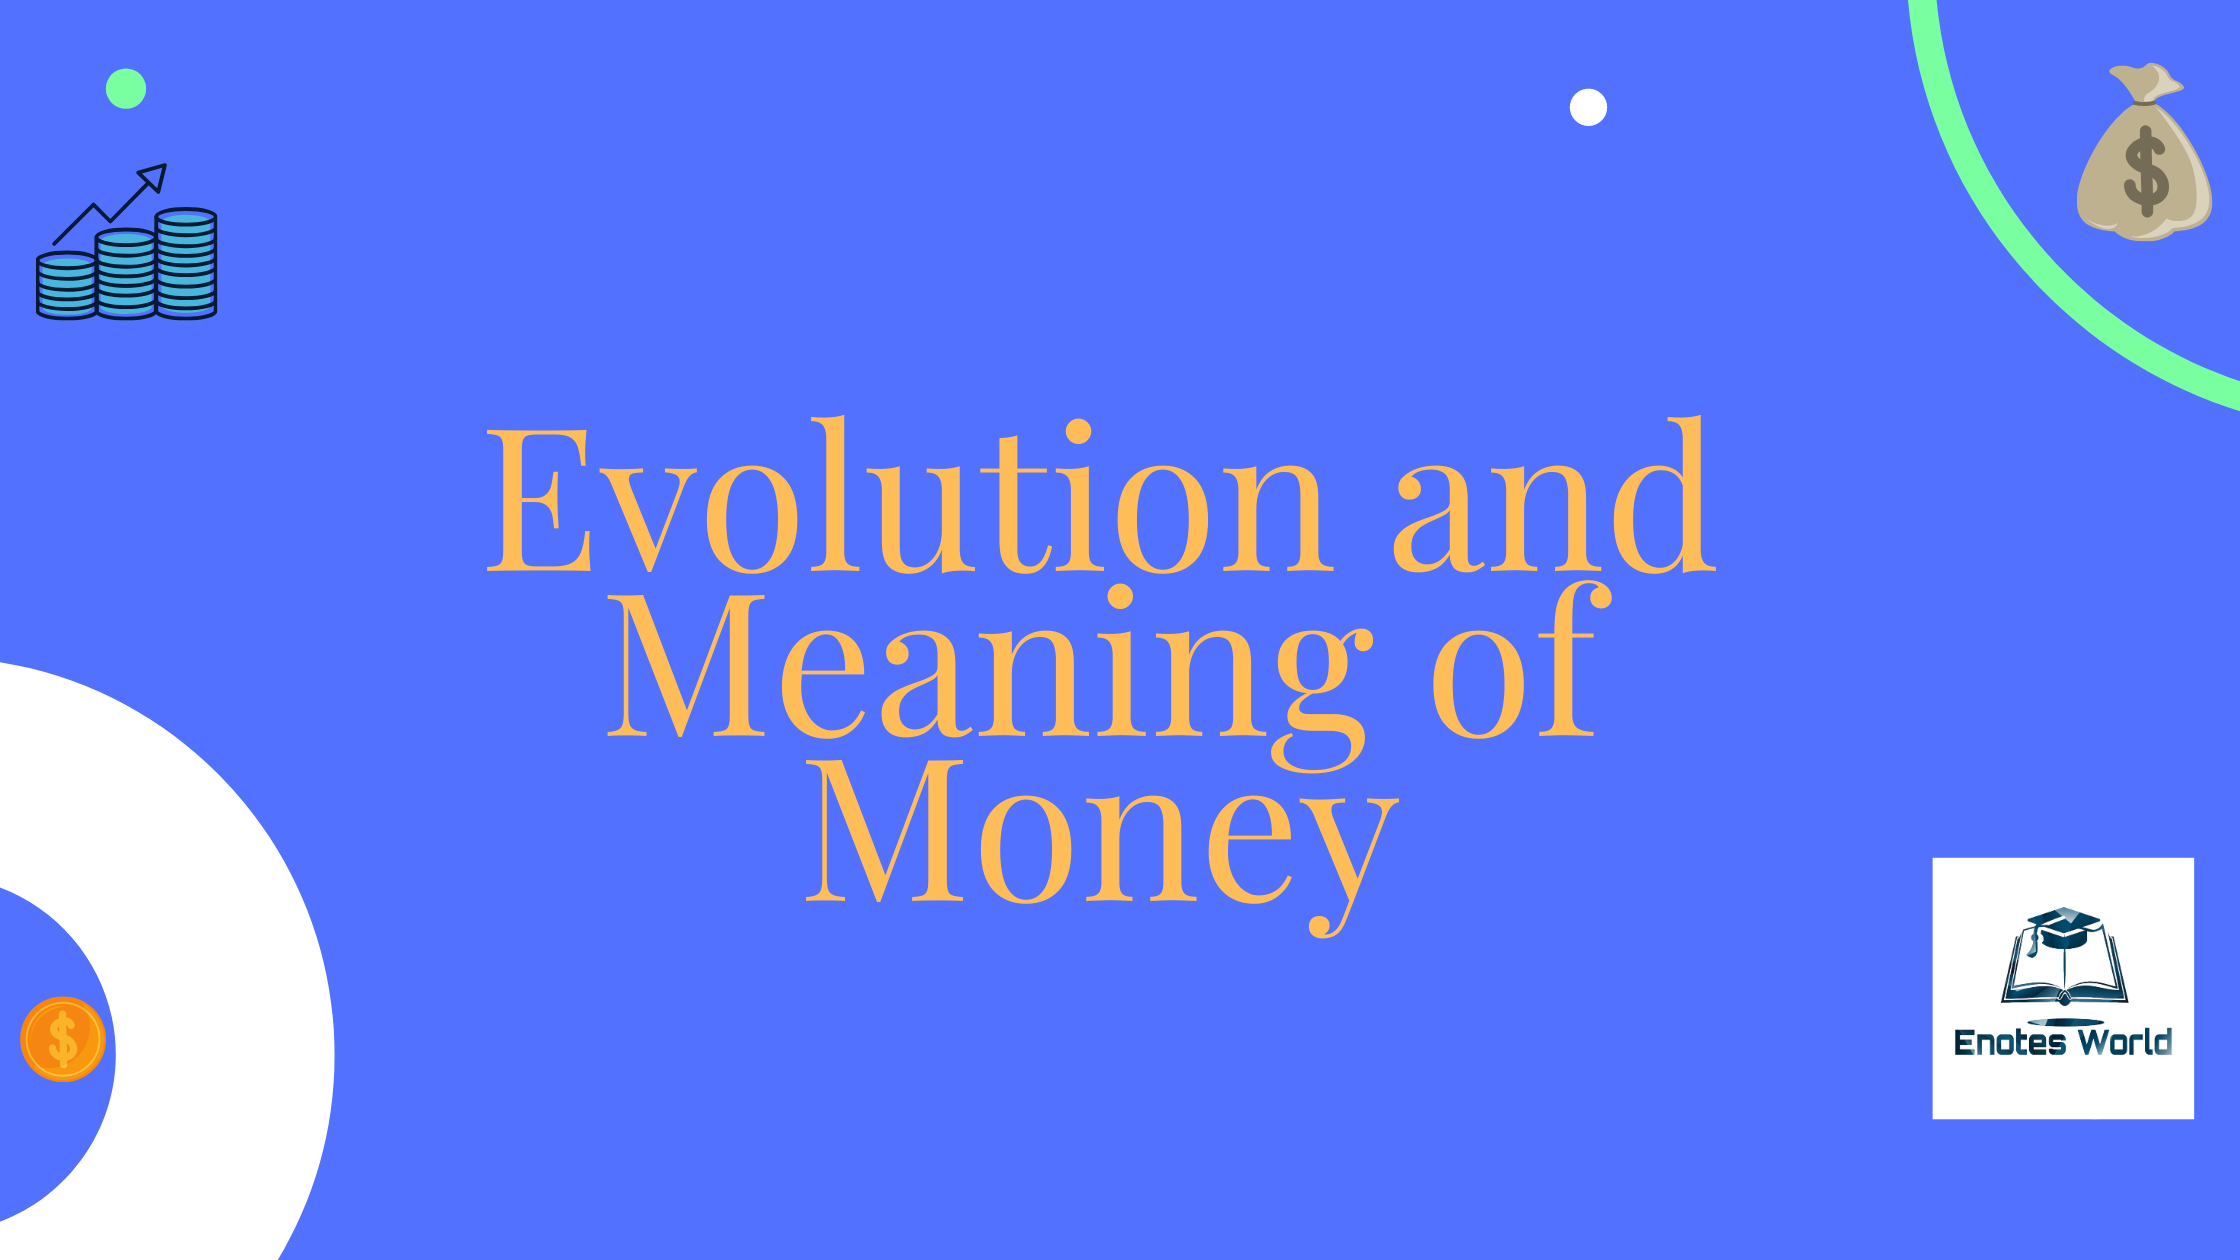 Evolution and Meaning of Money